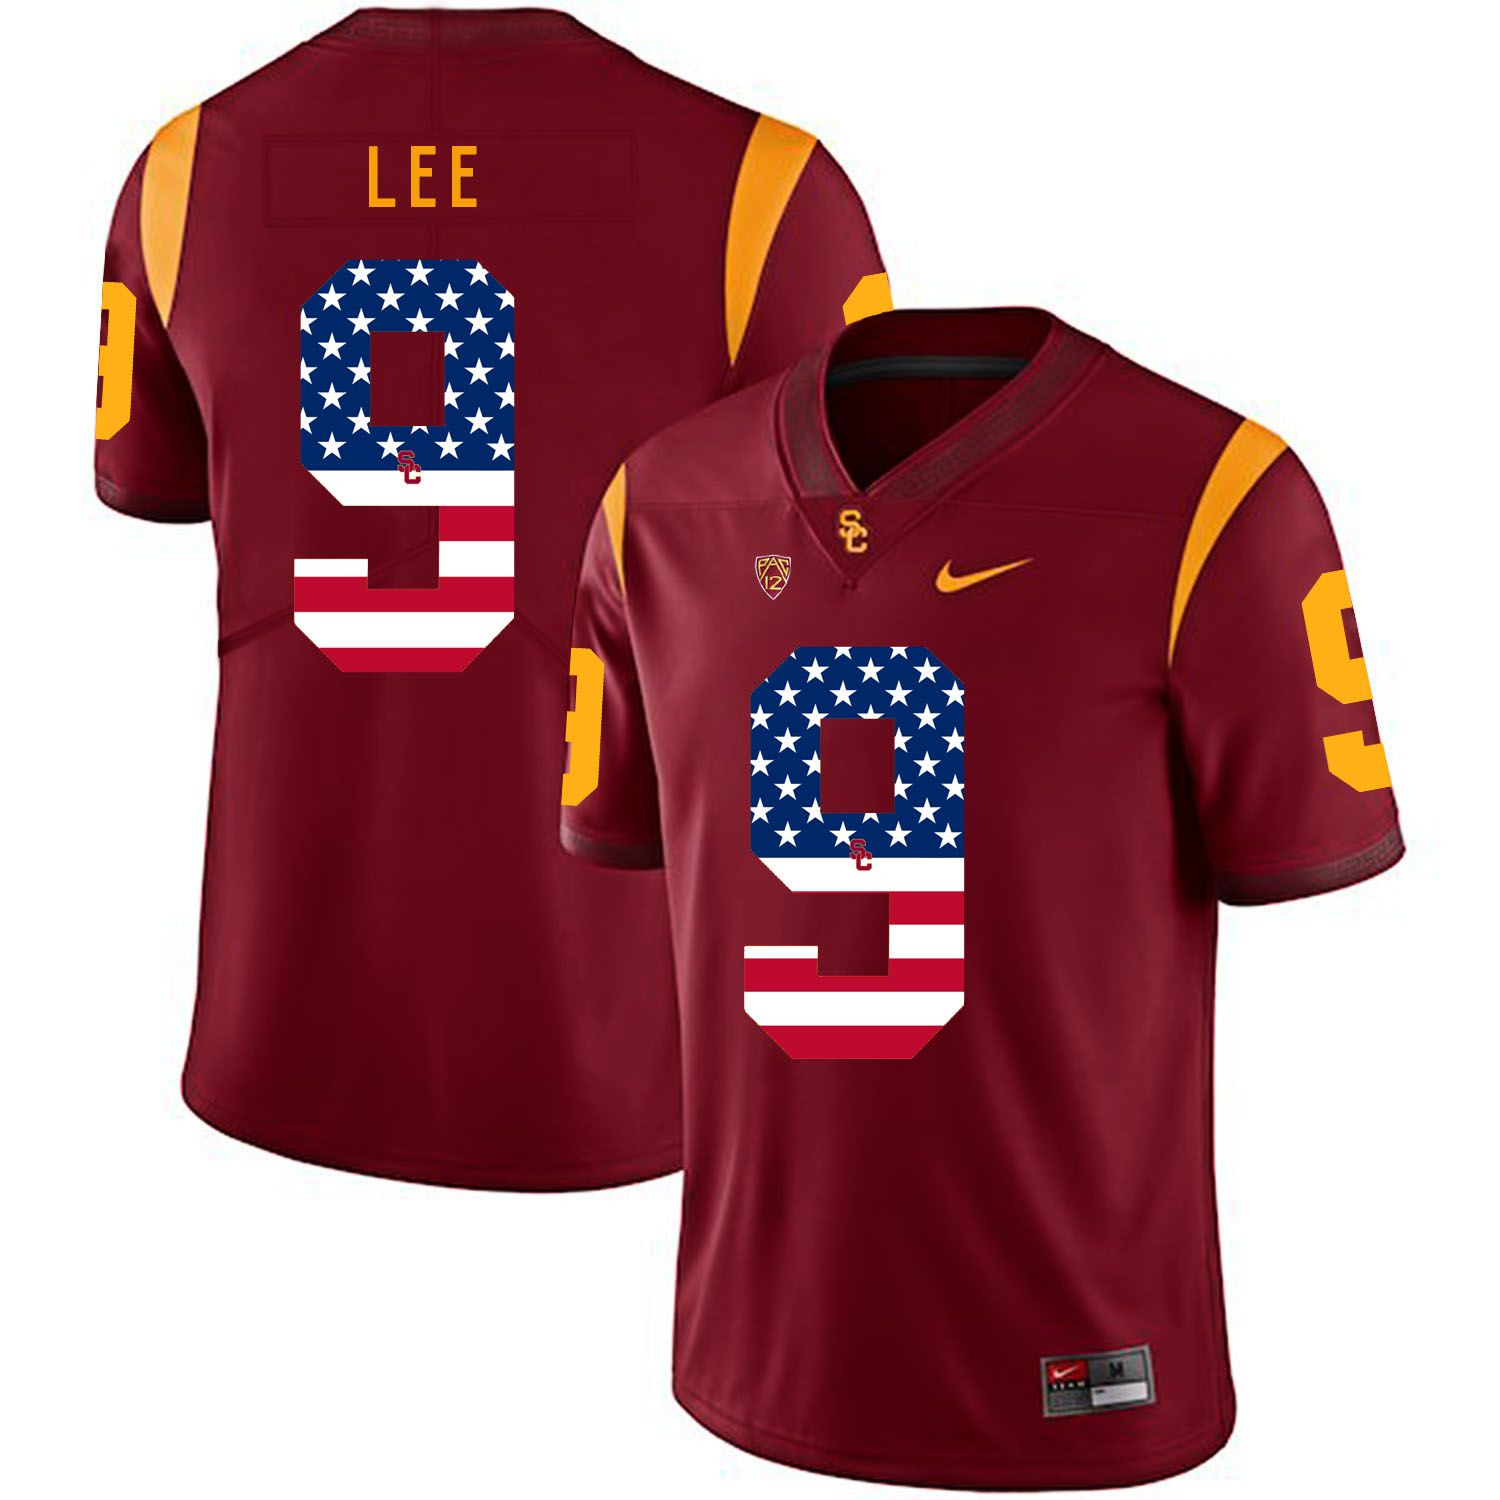 Men USC Trojans 9 Lee Red Flag Customized NCAA Jerseys